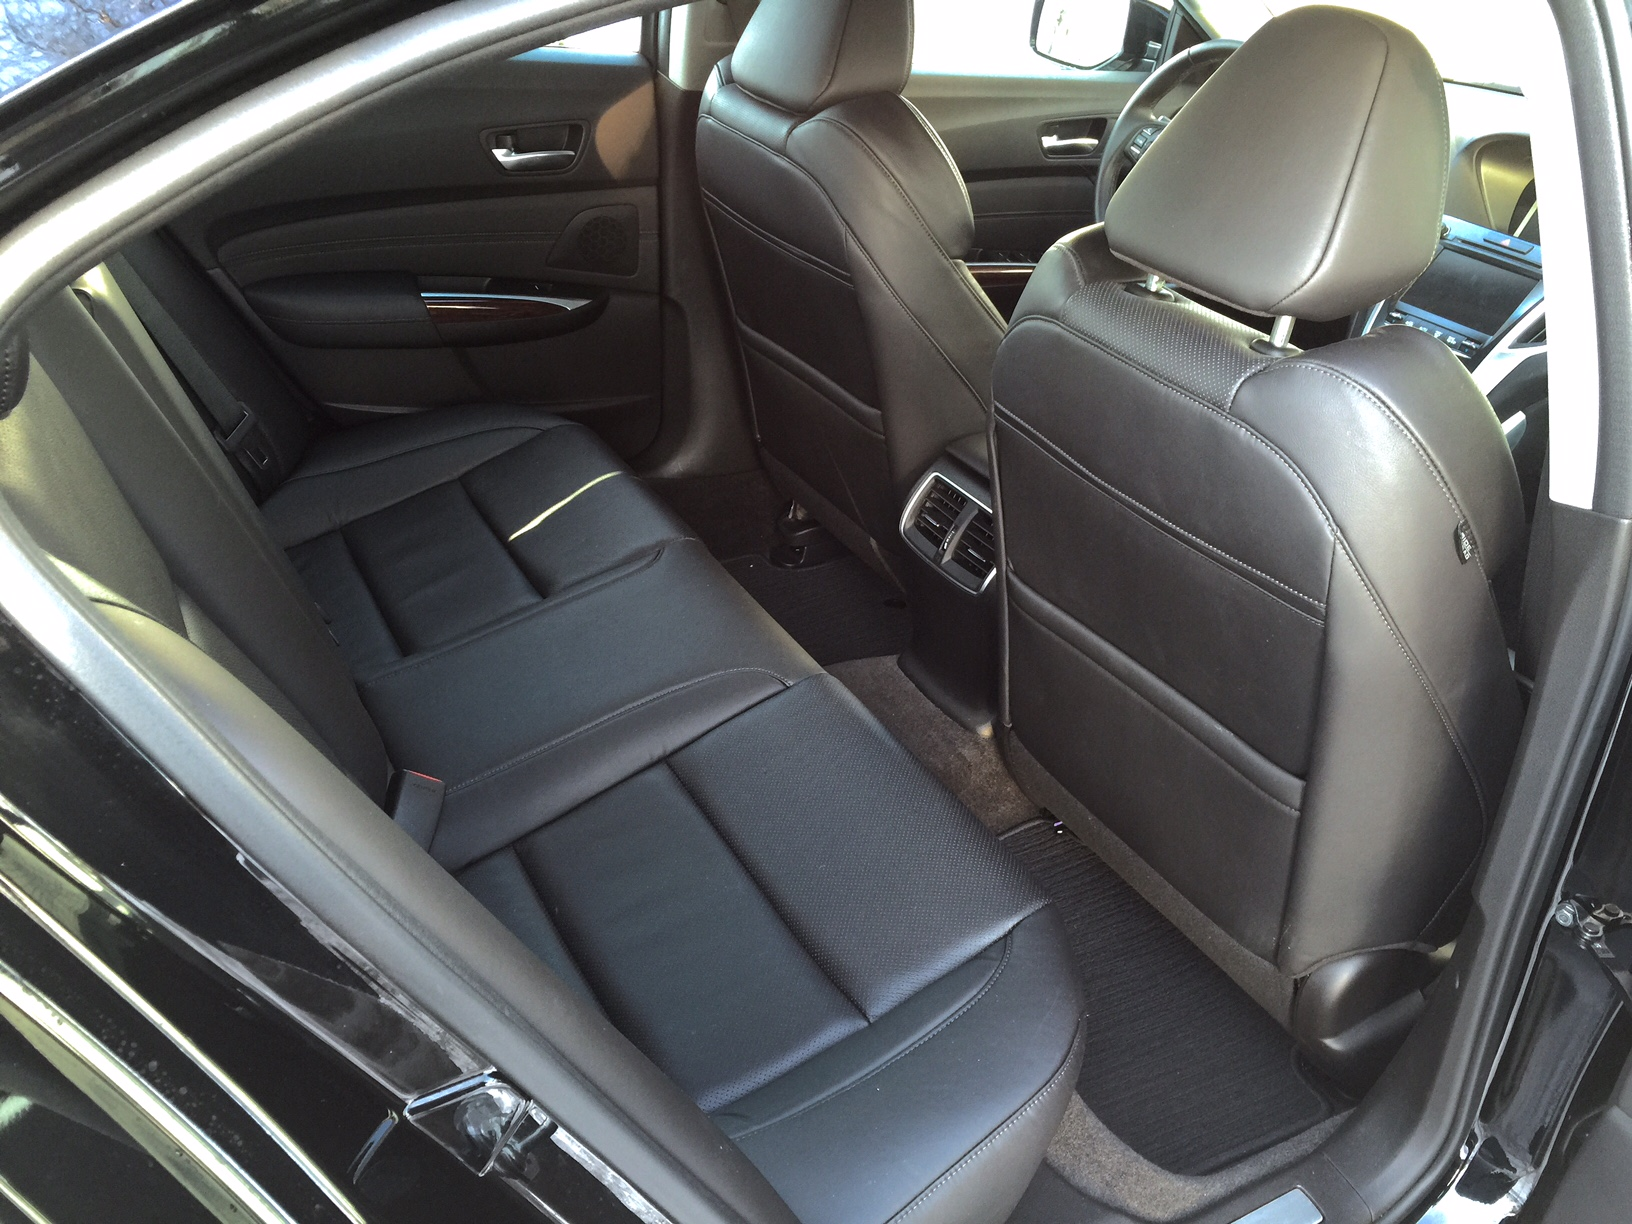 2015 Acura TLX Rear Seats